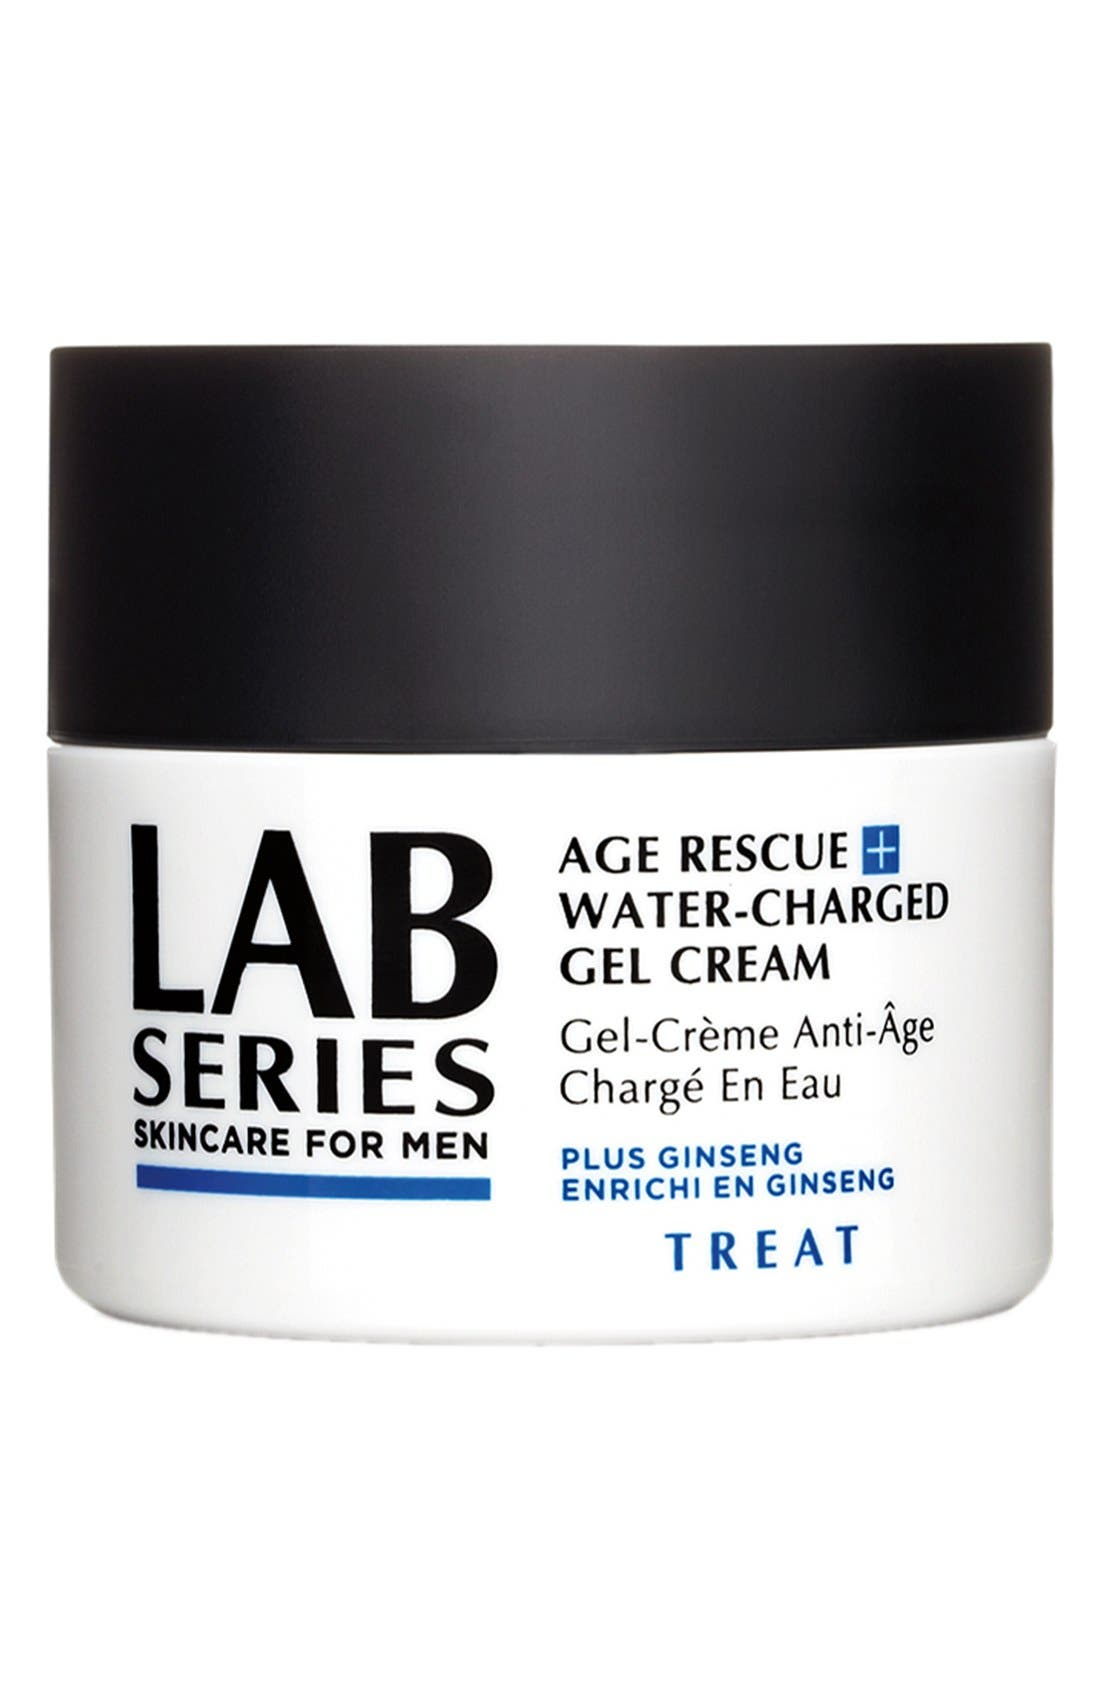 Lab Series Skincare for Men Age Rescue + Water-Charged Gel Cream